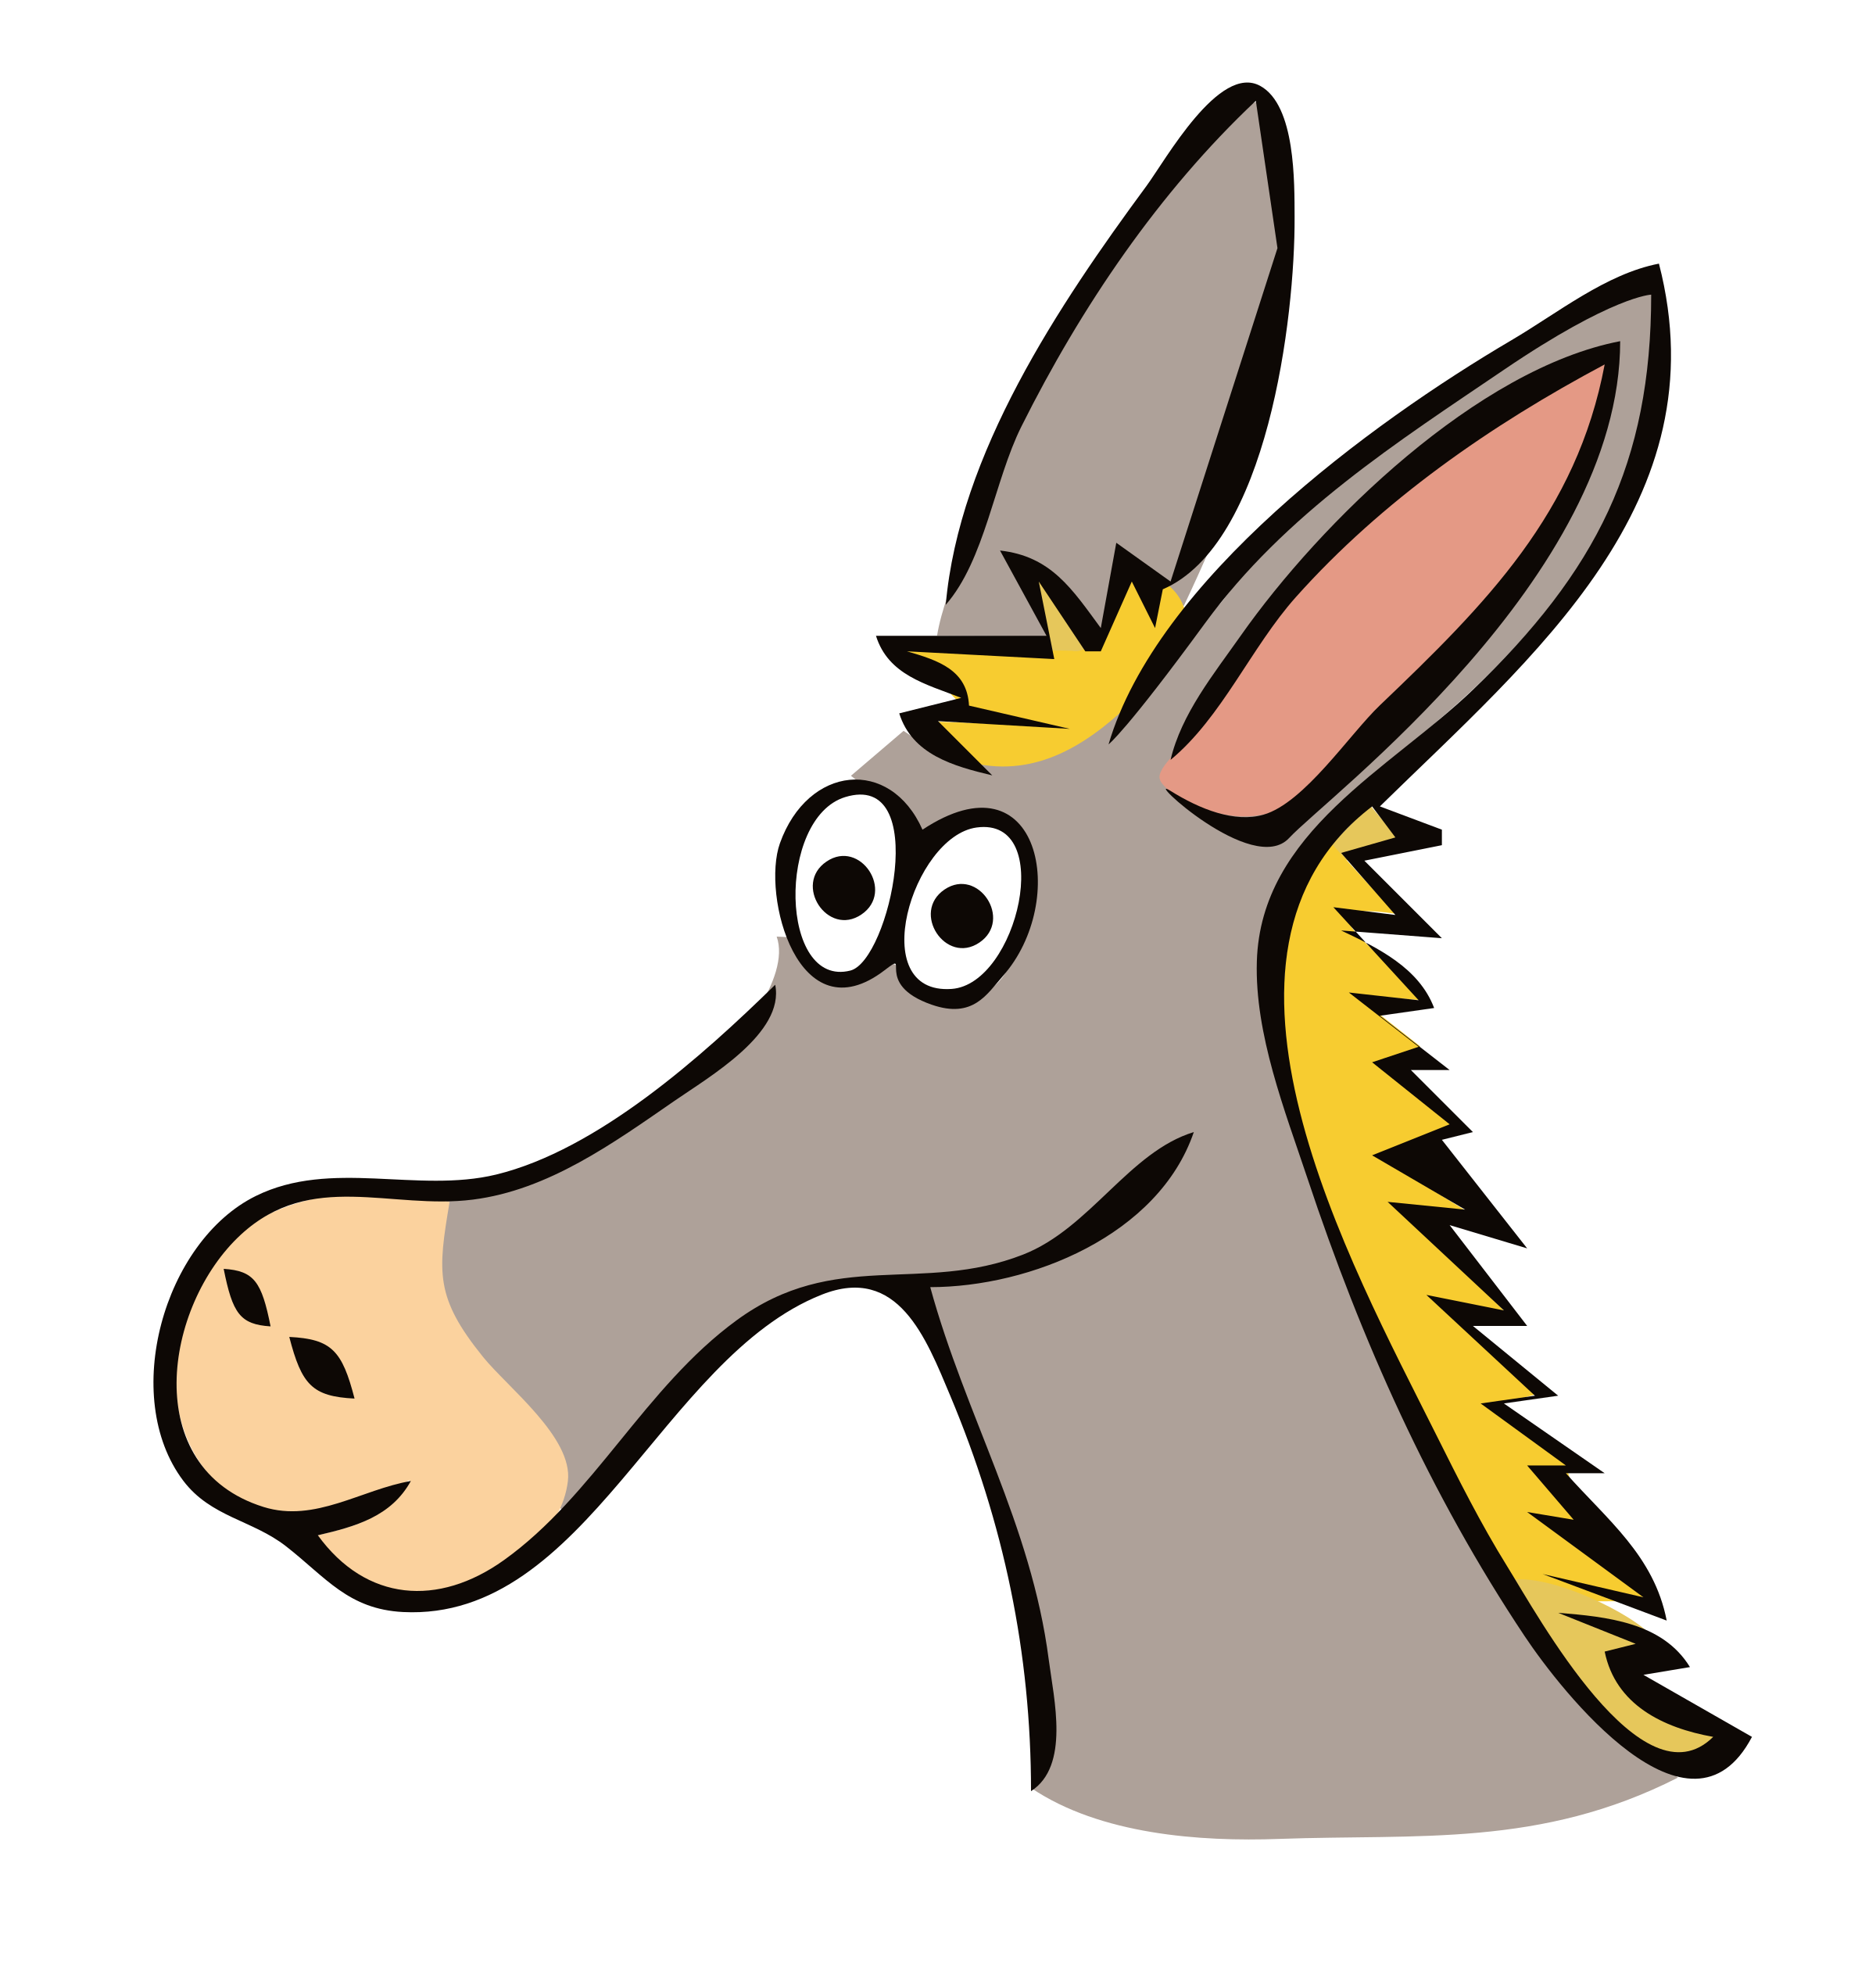 Drawn big image png. Head clipart donkey